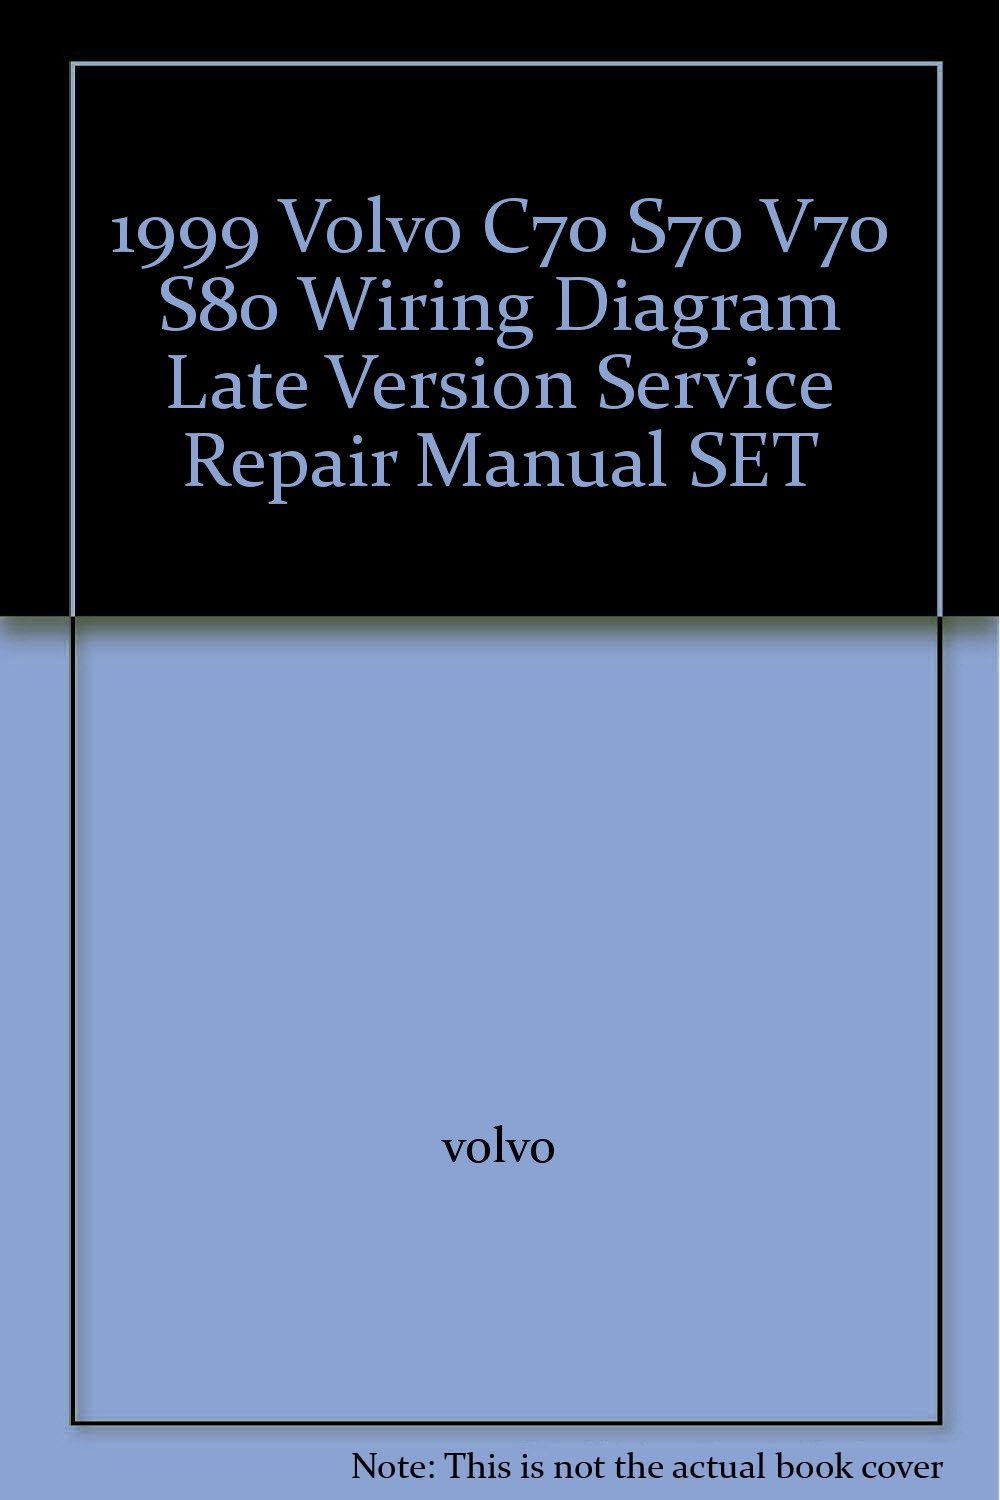 Volvo S80 Wiring Diagram | Wiring Diagram on 2001 pontiac grand am wiring diagram, 1999 jeep grand cherokee wiring diagram, 2006 volvo xc90 wiring diagram, 2007 volvo xc70 wiring diagram, 2004 volvo s80 spark plugs, 2004 volvo s80 coil diagram, 1998 oldsmobile intrigue wiring diagram, 1995 volvo 850 wiring diagram, 2000 pontiac grand am wiring diagram, 2004 volvo s80 hose, 2006 chrysler pt cruiser wiring diagram, 2004 volvo s80 radio, 2000 volvo s80 wiring diagram, 2001 volkswagen jetta wiring diagram, 2004 volvo s80 headlight, 2005 chevrolet malibu wiring diagram, 1995 volvo 960 wiring diagram, 2003 nissan sentra wiring diagram, 1999 pontiac grand am wiring diagram, 2004 volvo s80 exhaust system diagram,